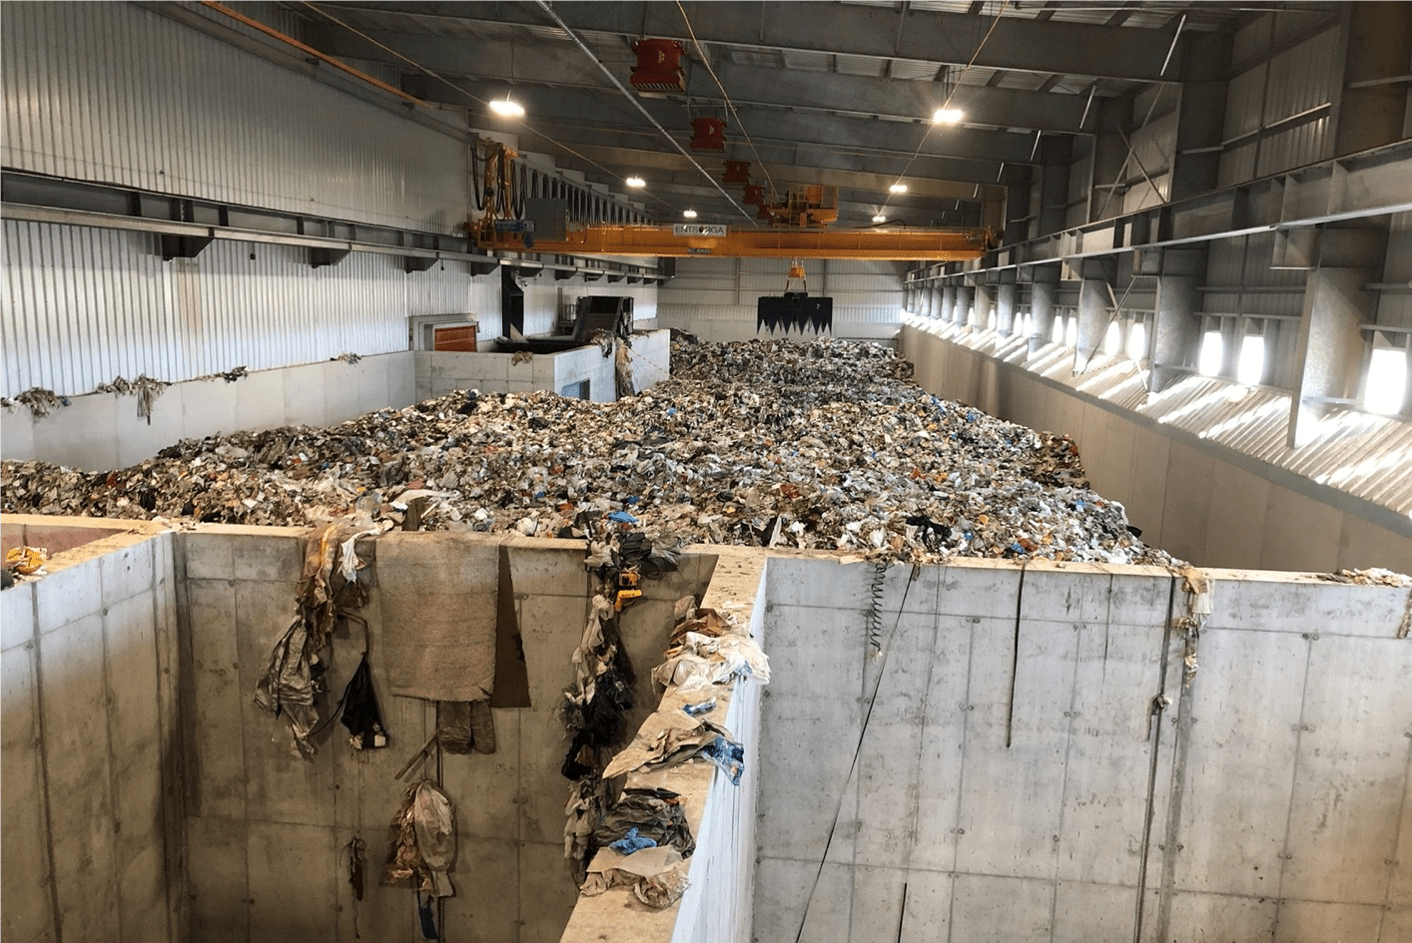 Entsorga West Virginia redefines waste management by using innovative recycling technology